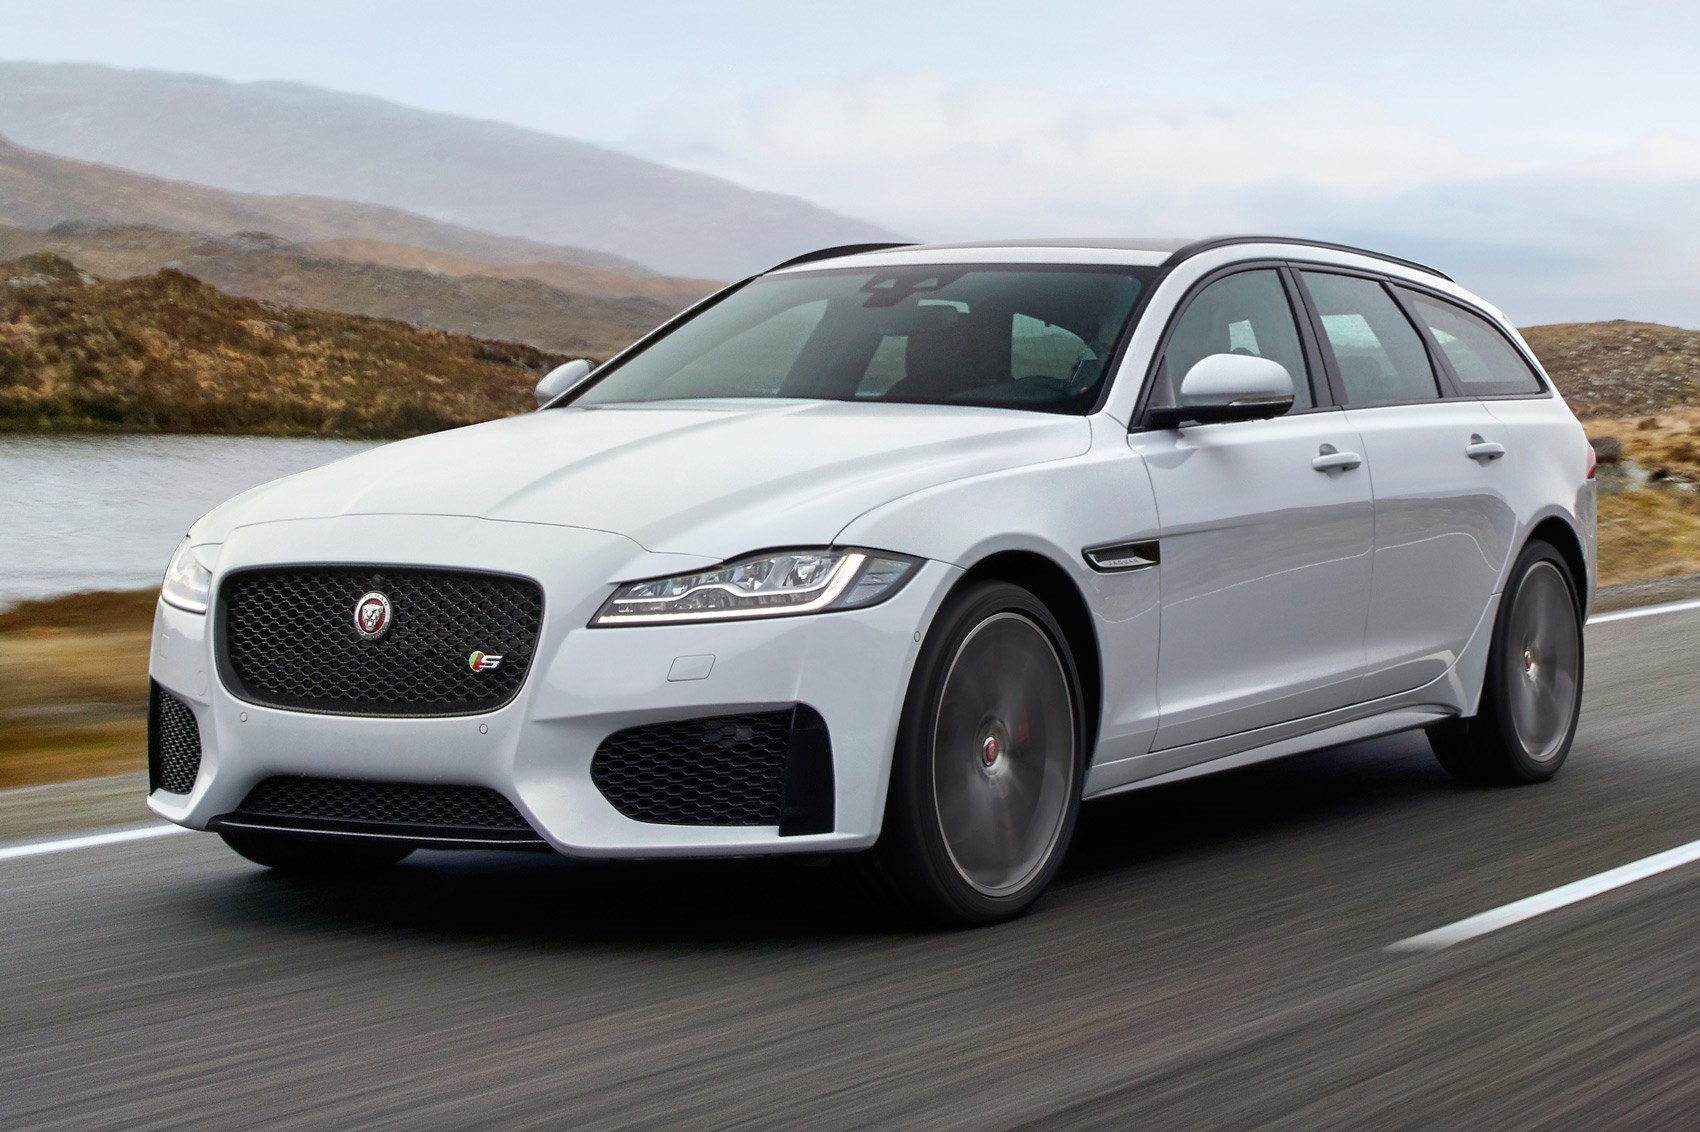 jaguar xf sportbrake revealed in full by car magazine. Black Bedroom Furniture Sets. Home Design Ideas